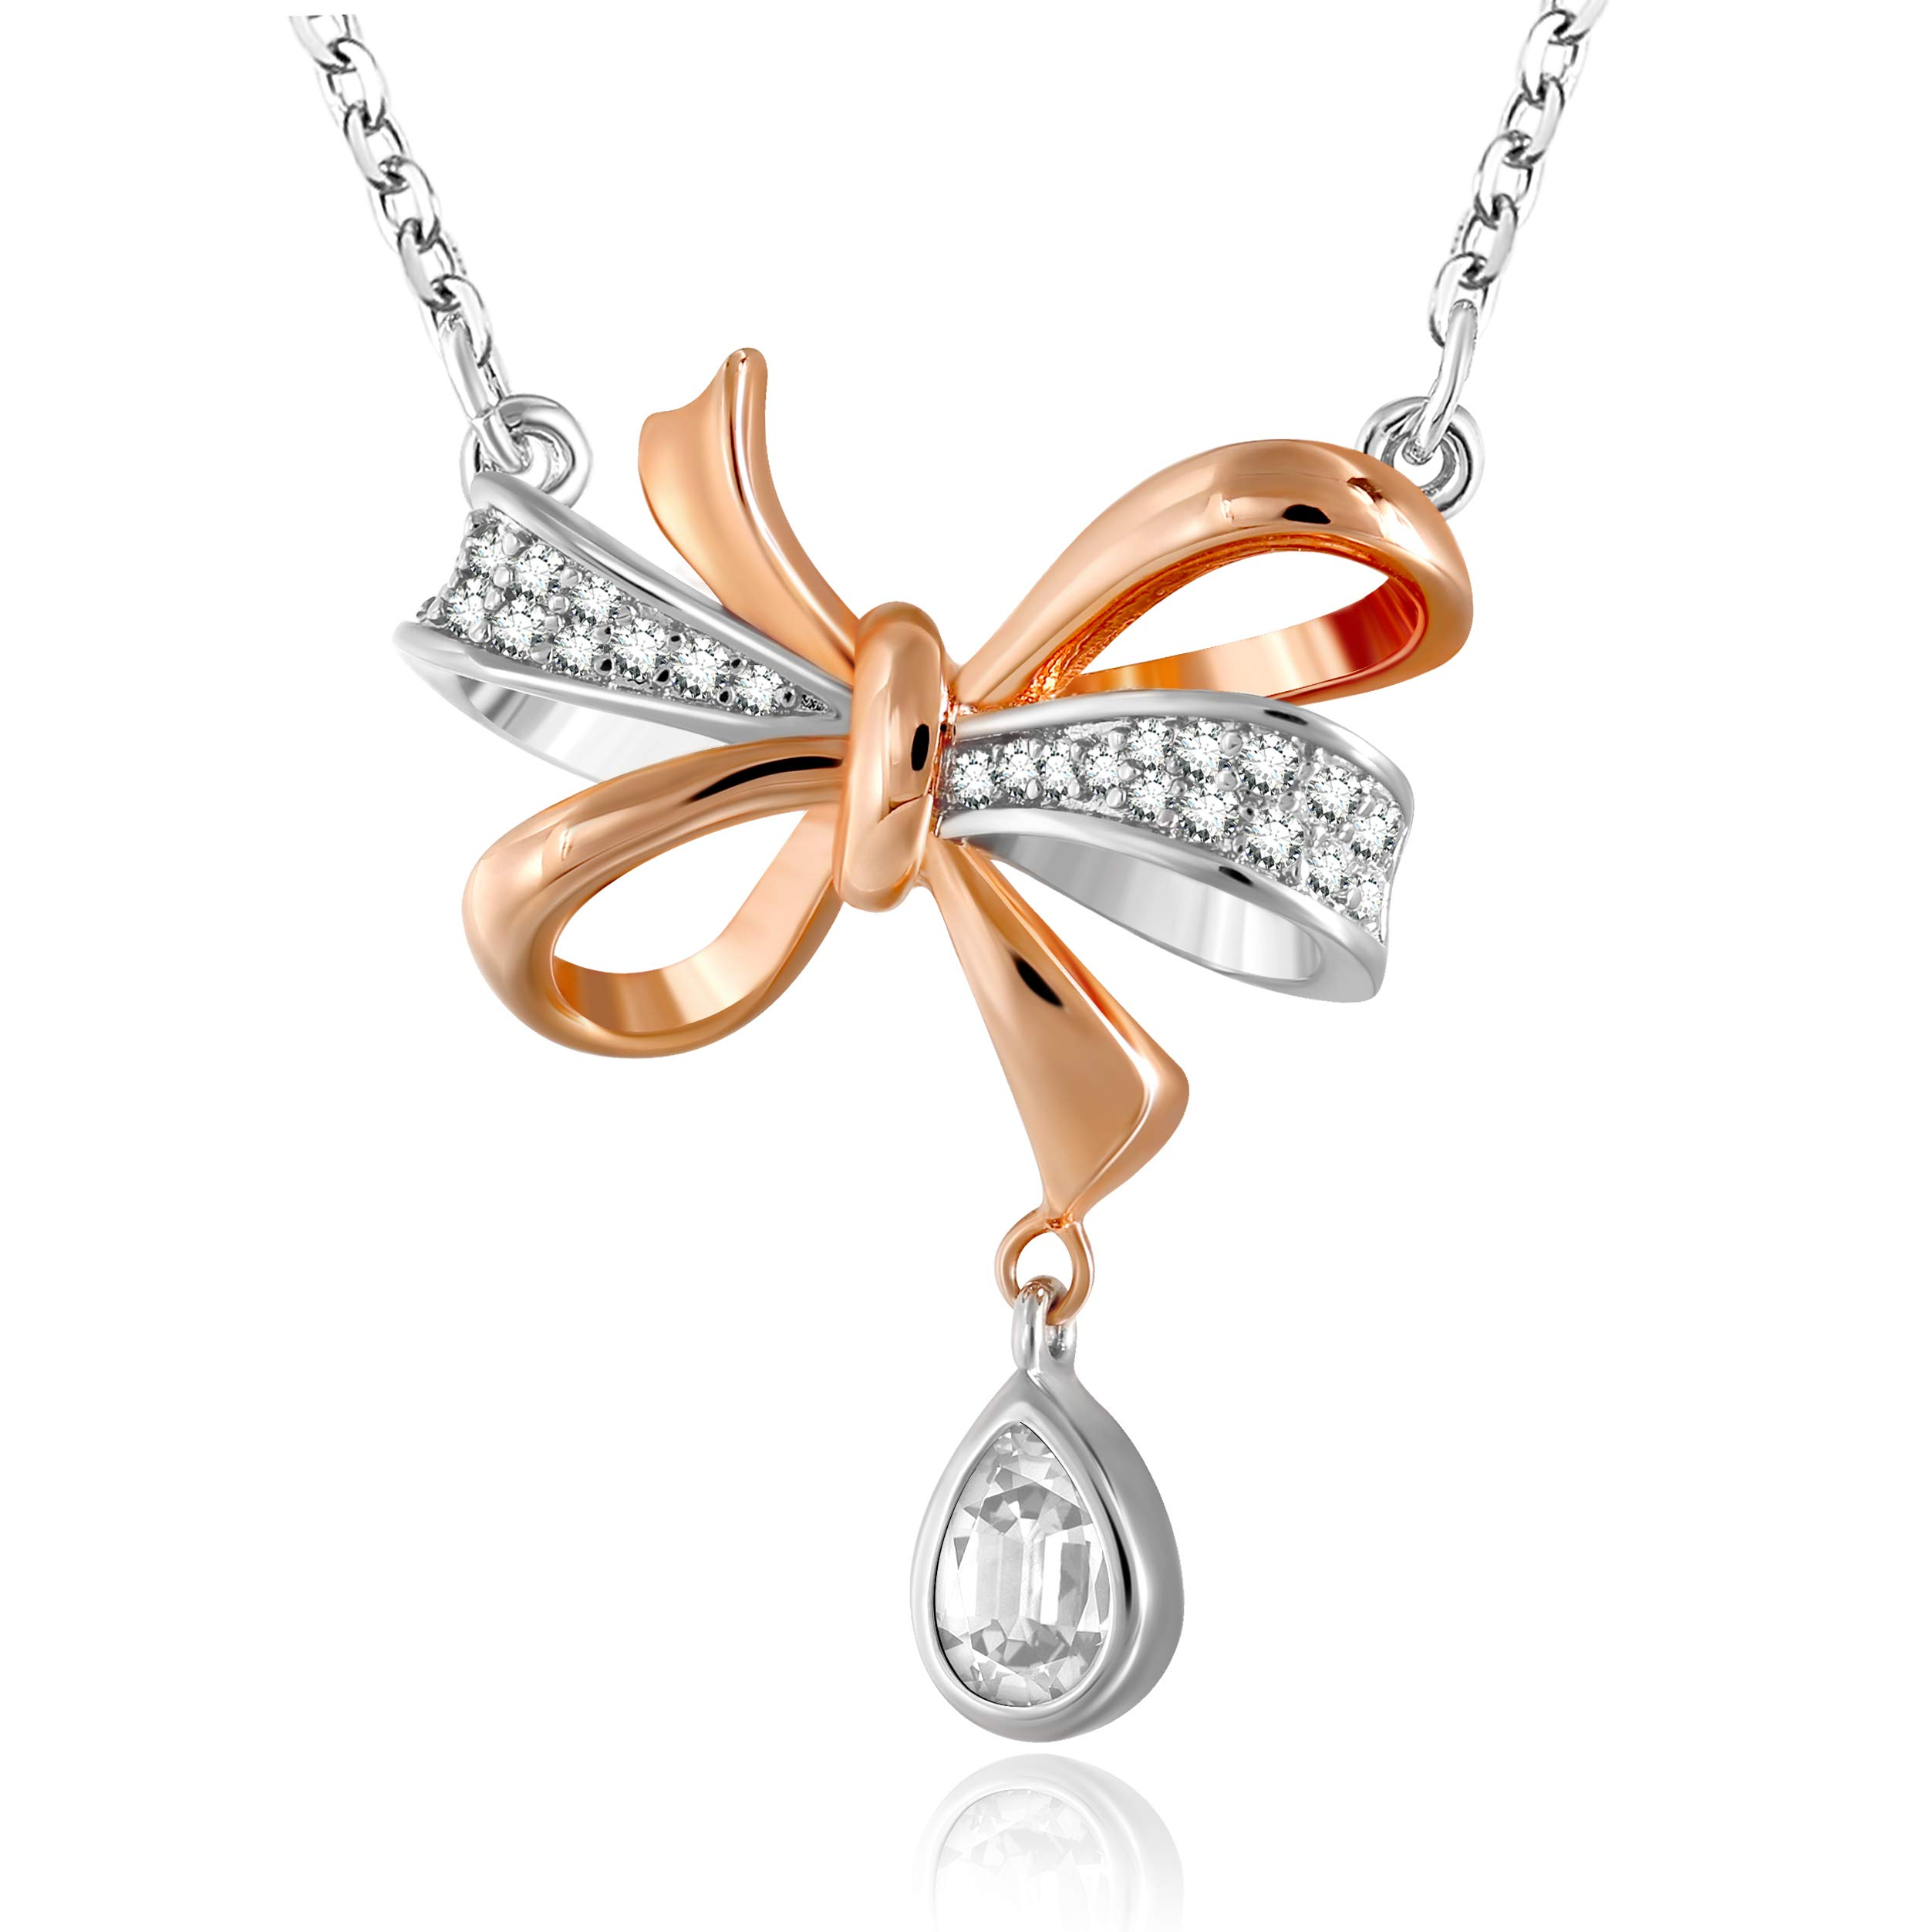 GEORGE · SMITH Love Knot Rose Gold Pendant Necklace for Women, Birthday Gift Necklace Jewelry Gifts with 18+2 Inches Extender Chain by GEORGE · SMITH